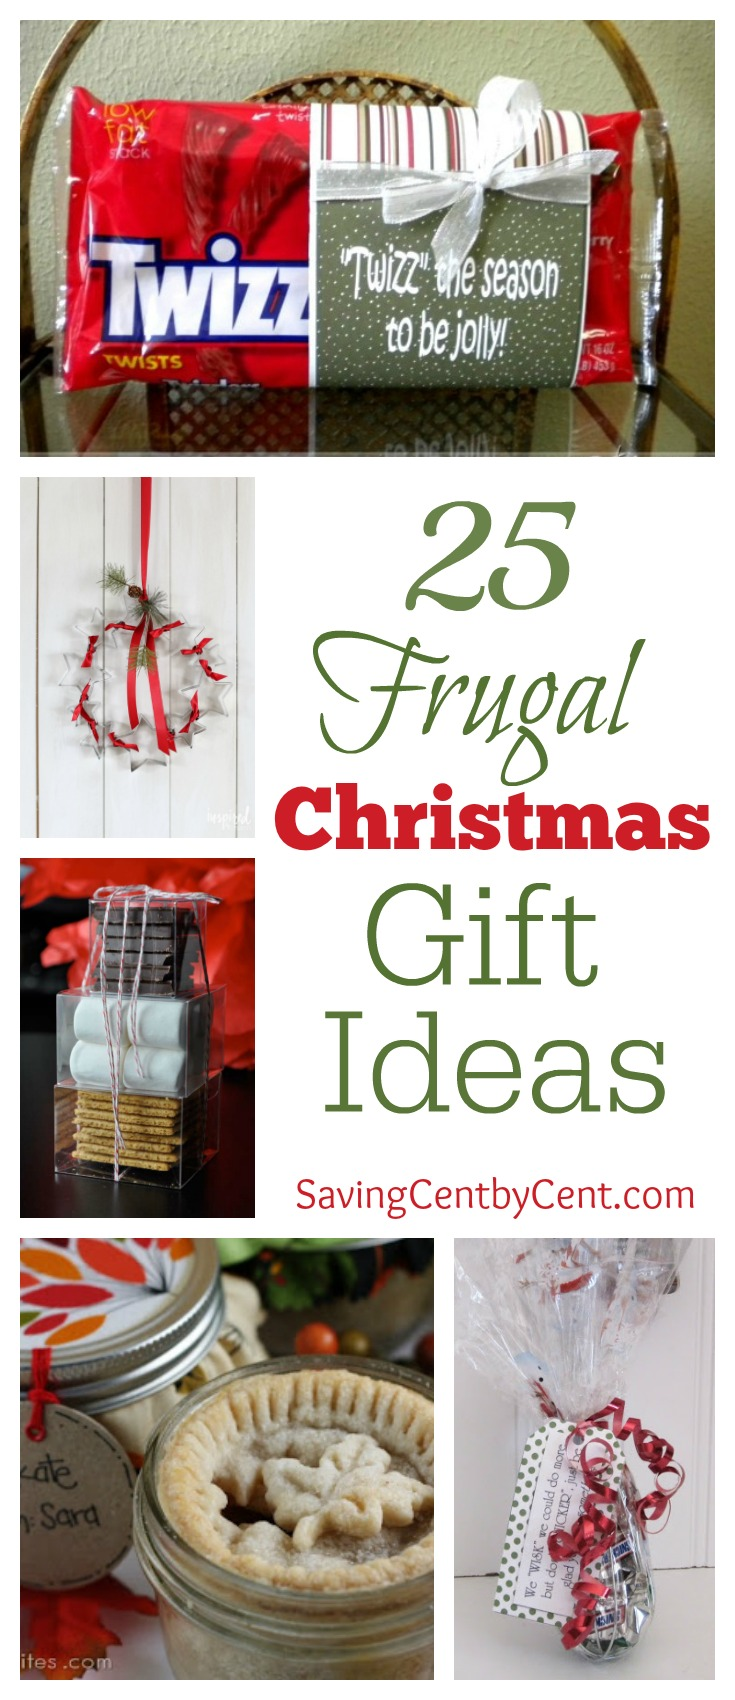 frugal christmas gift ideas